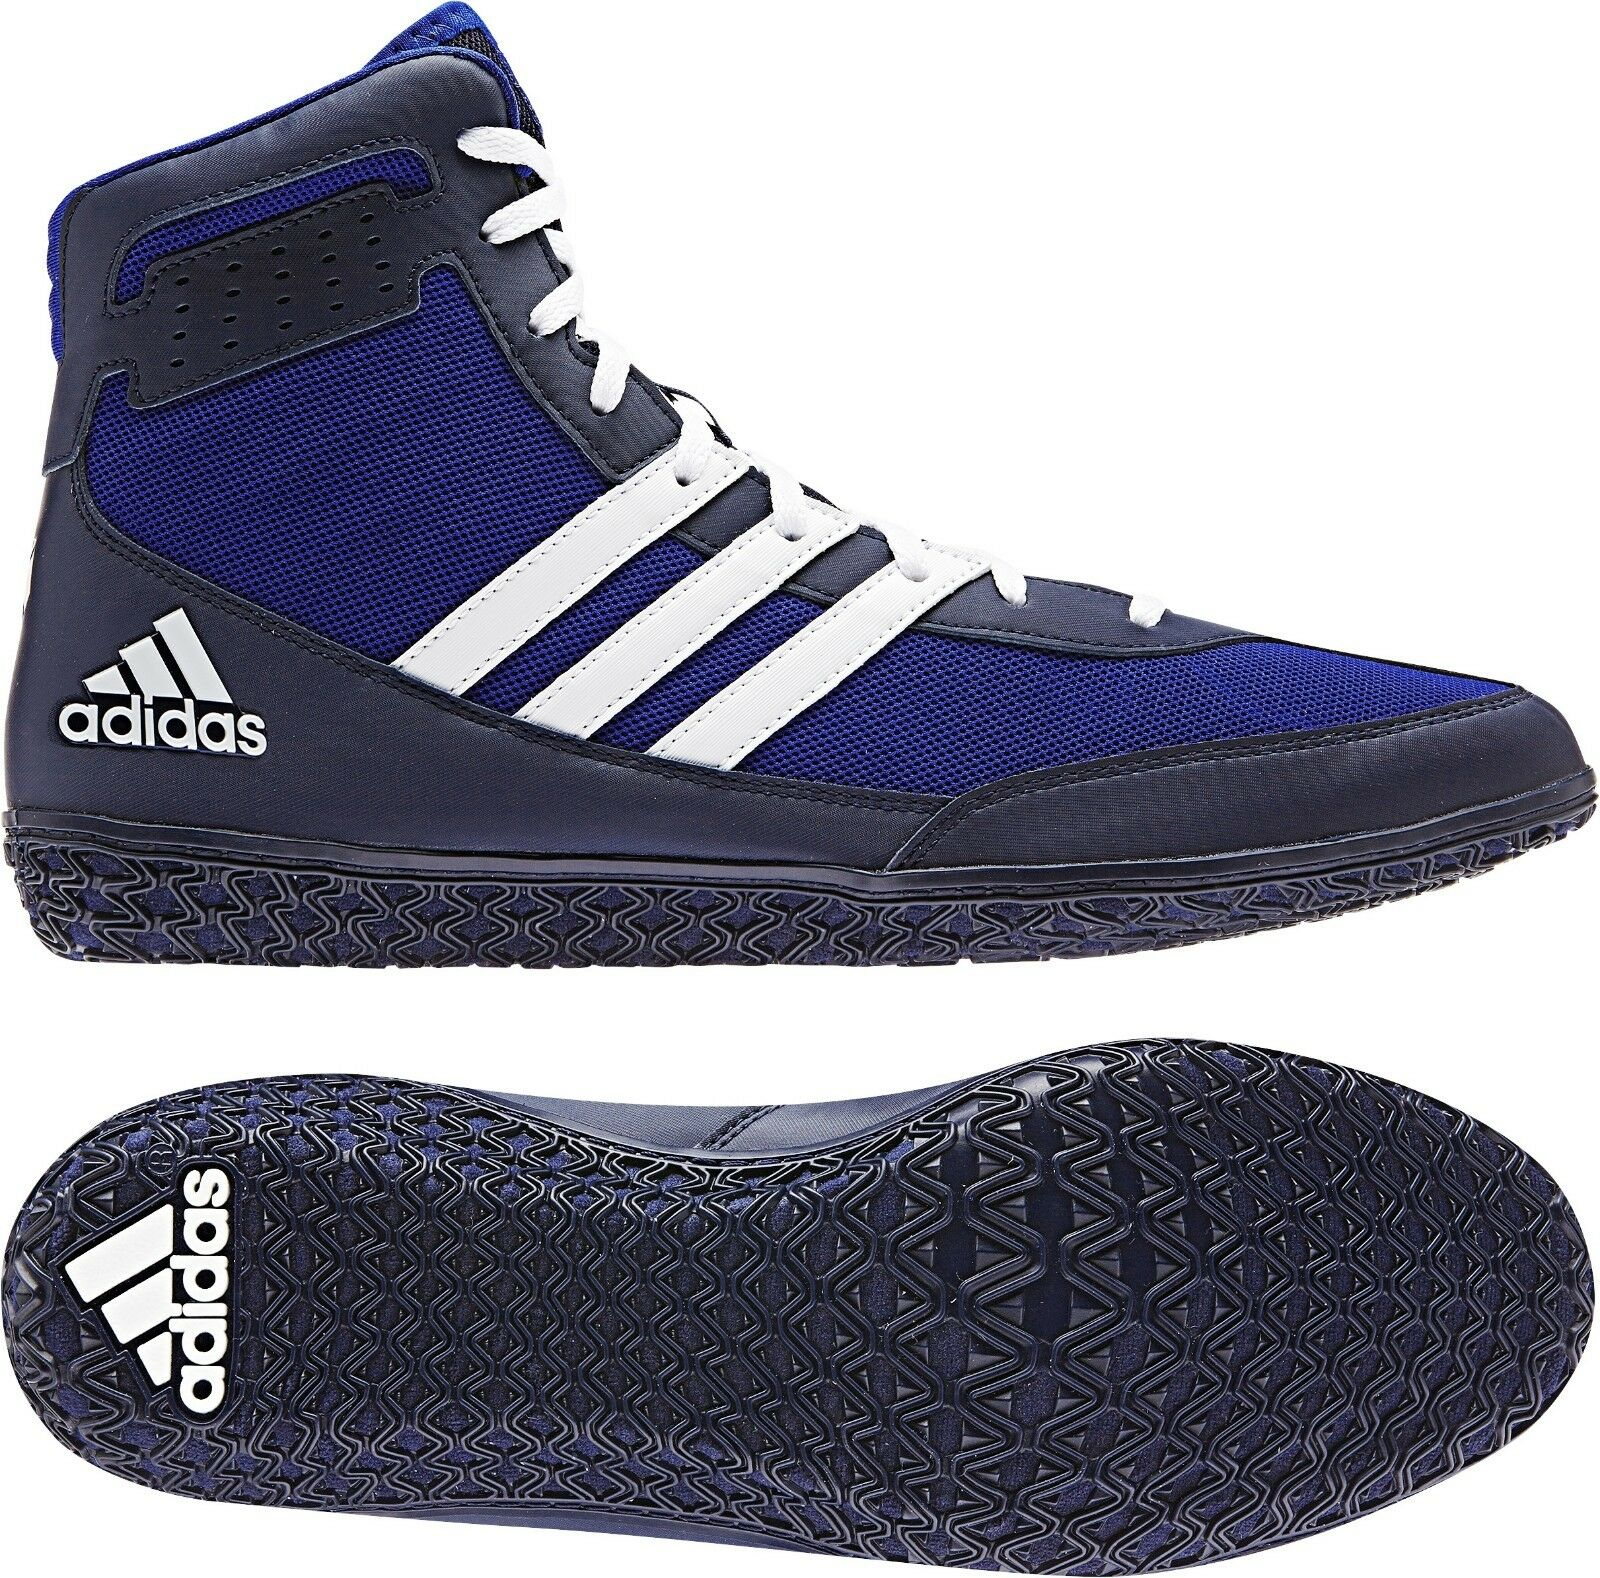 Adidas Mat Wizard.3 ADULT Men's Wrestling Shoes, Royal/Navy/White AQ6201 NEW!